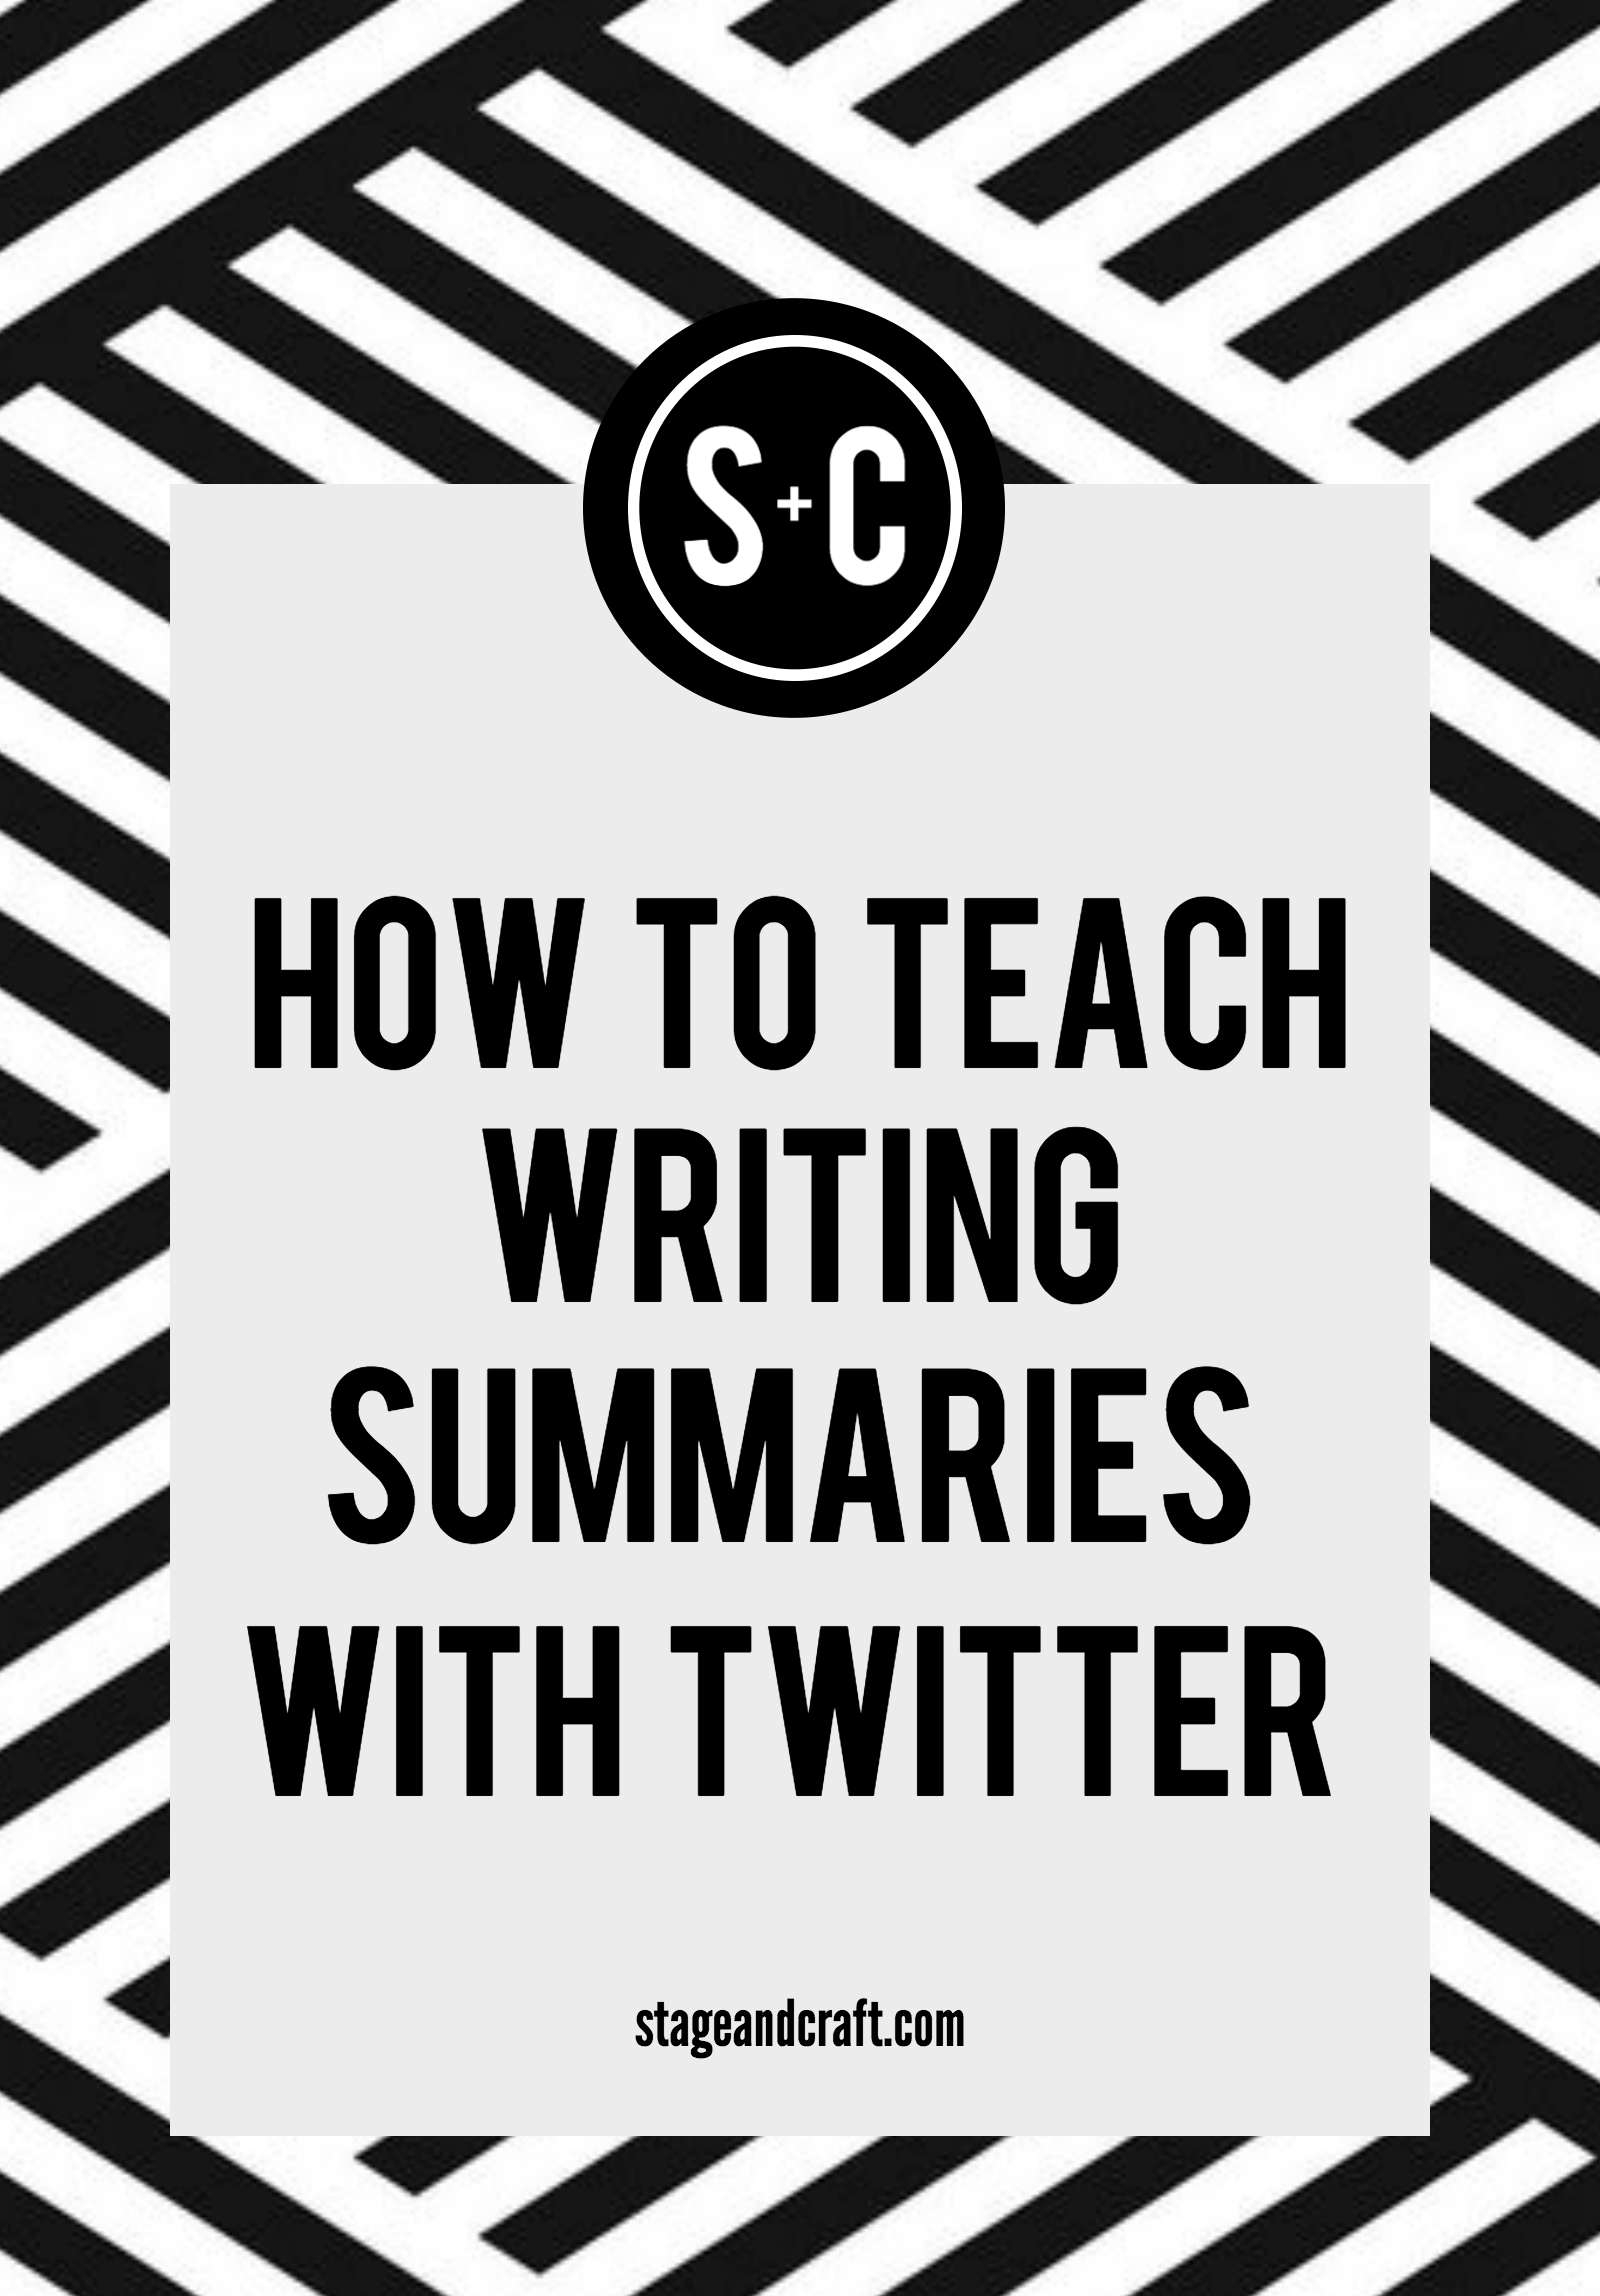 How To Teach Summarization With Twitter